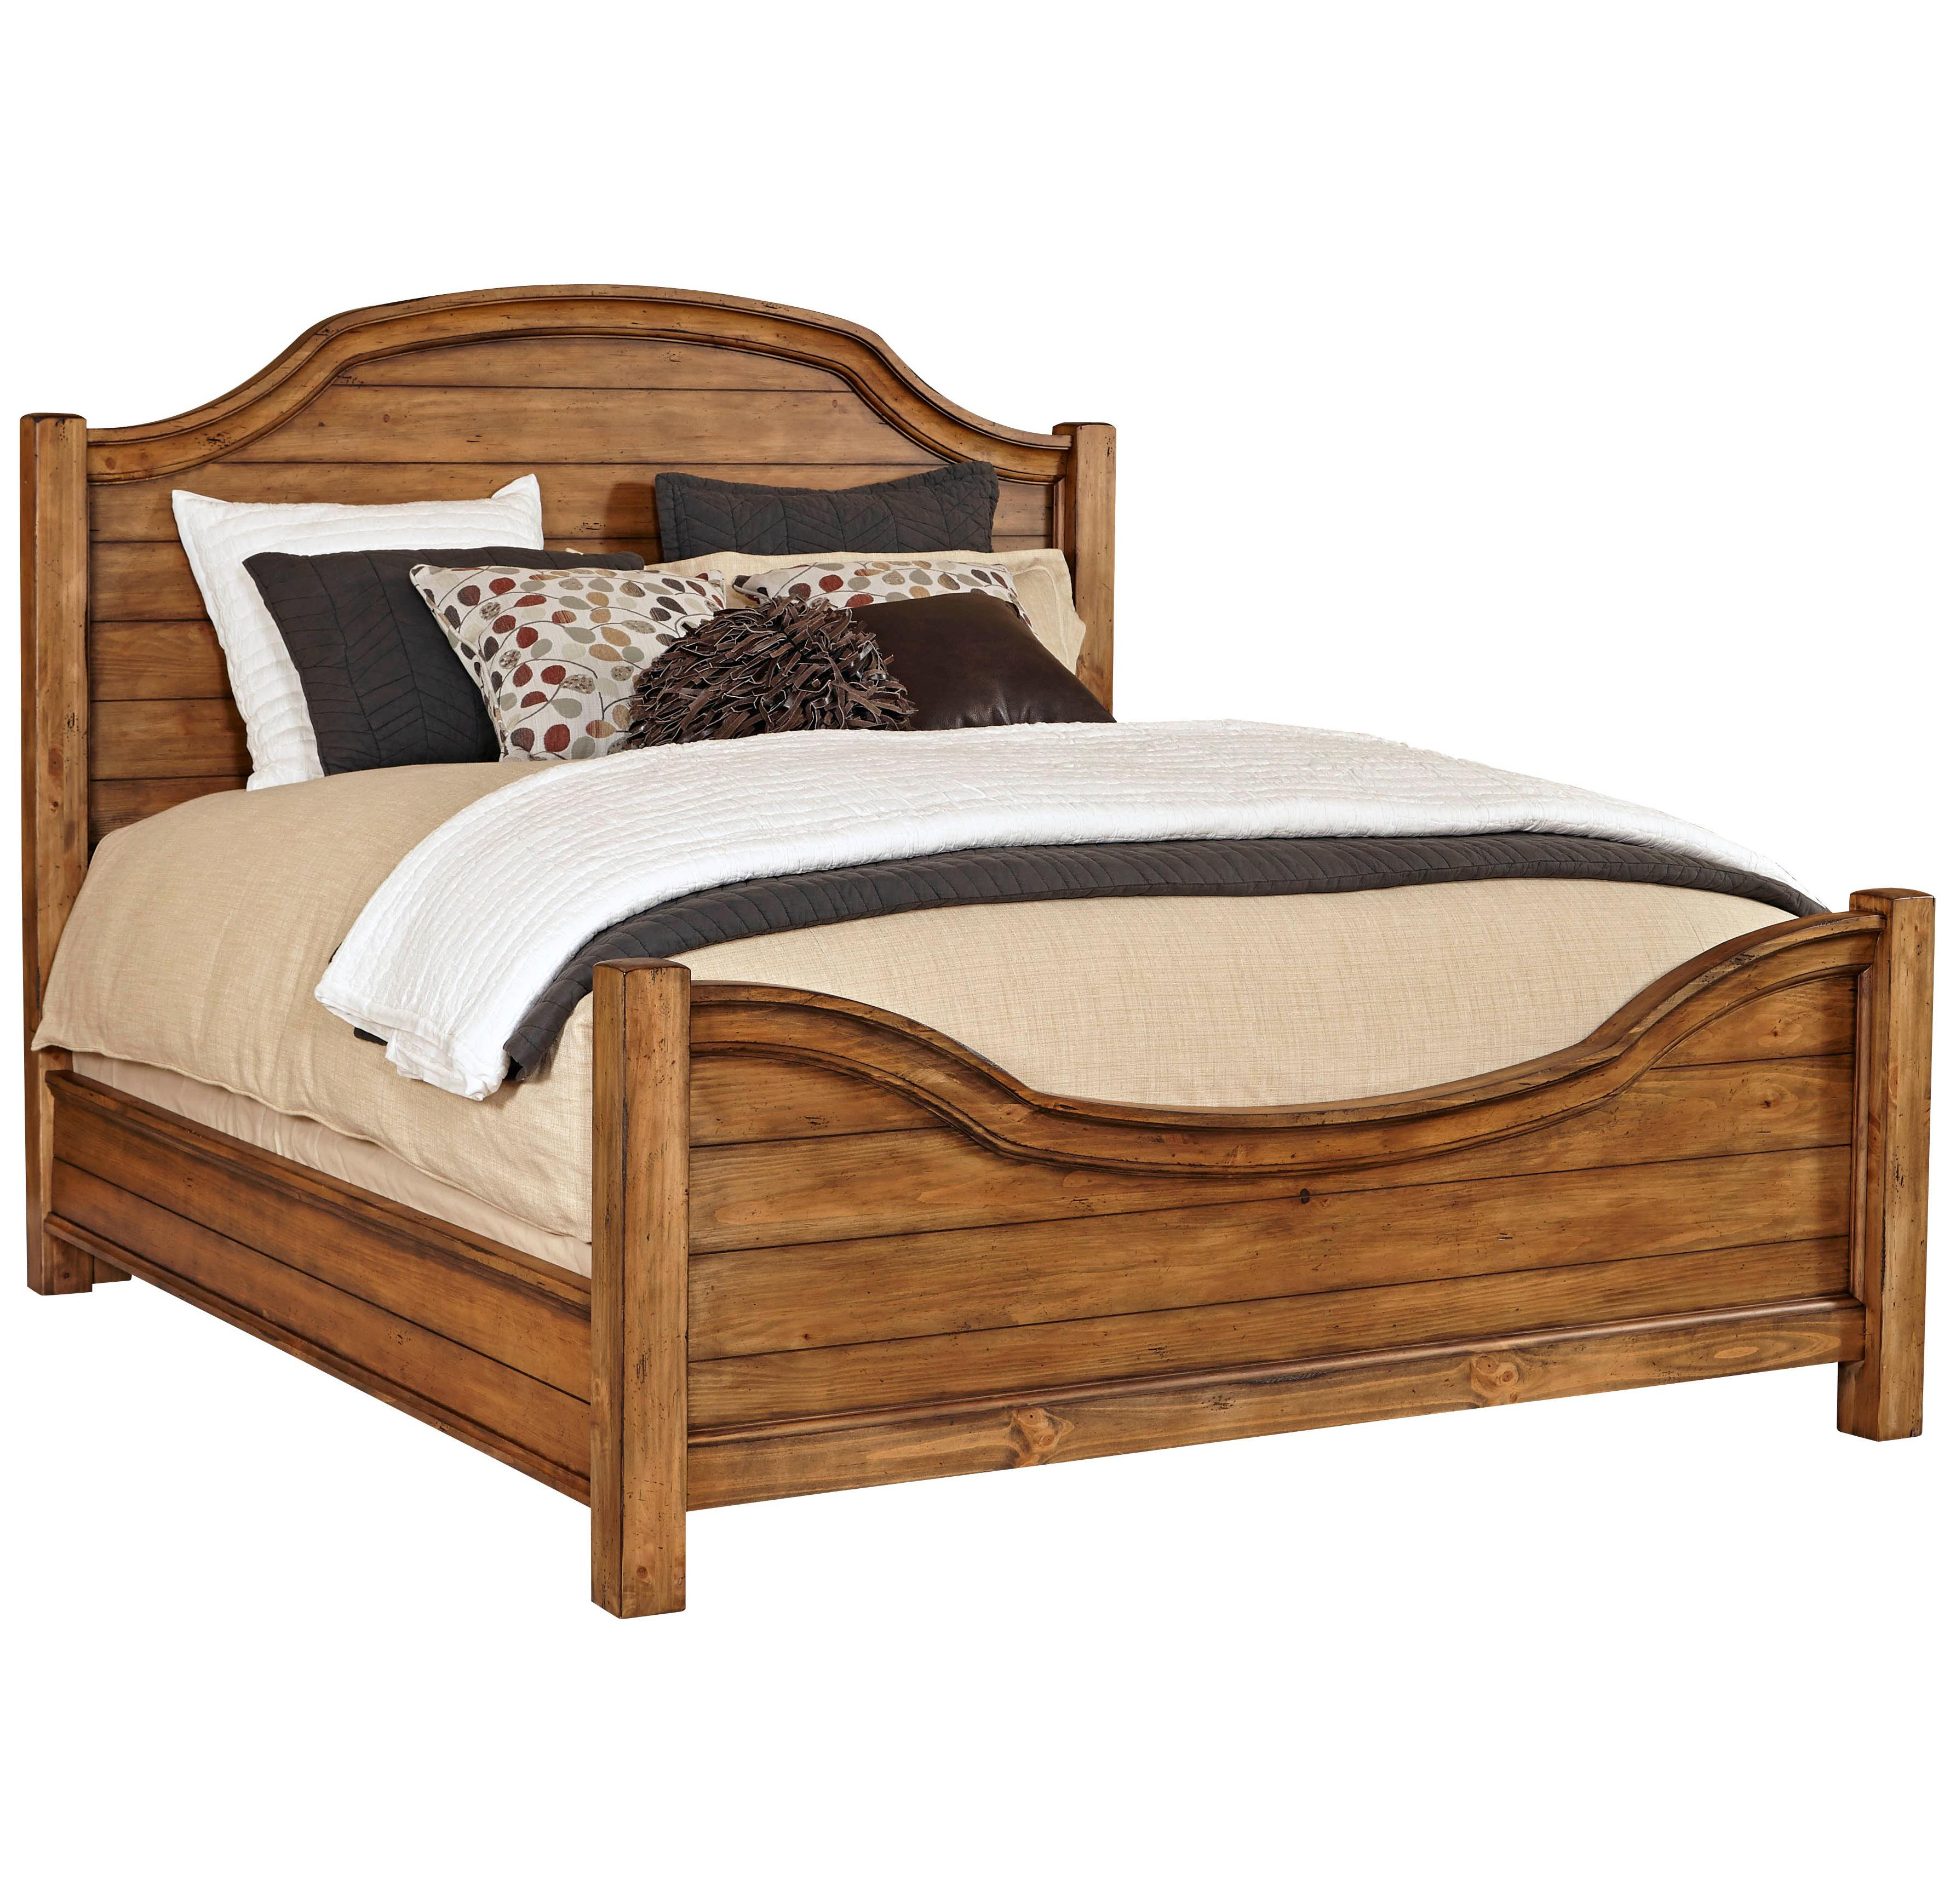 Broyhill Furniture Bethany Square Queen Panel Bed - Item Number: 4930-256+257+450